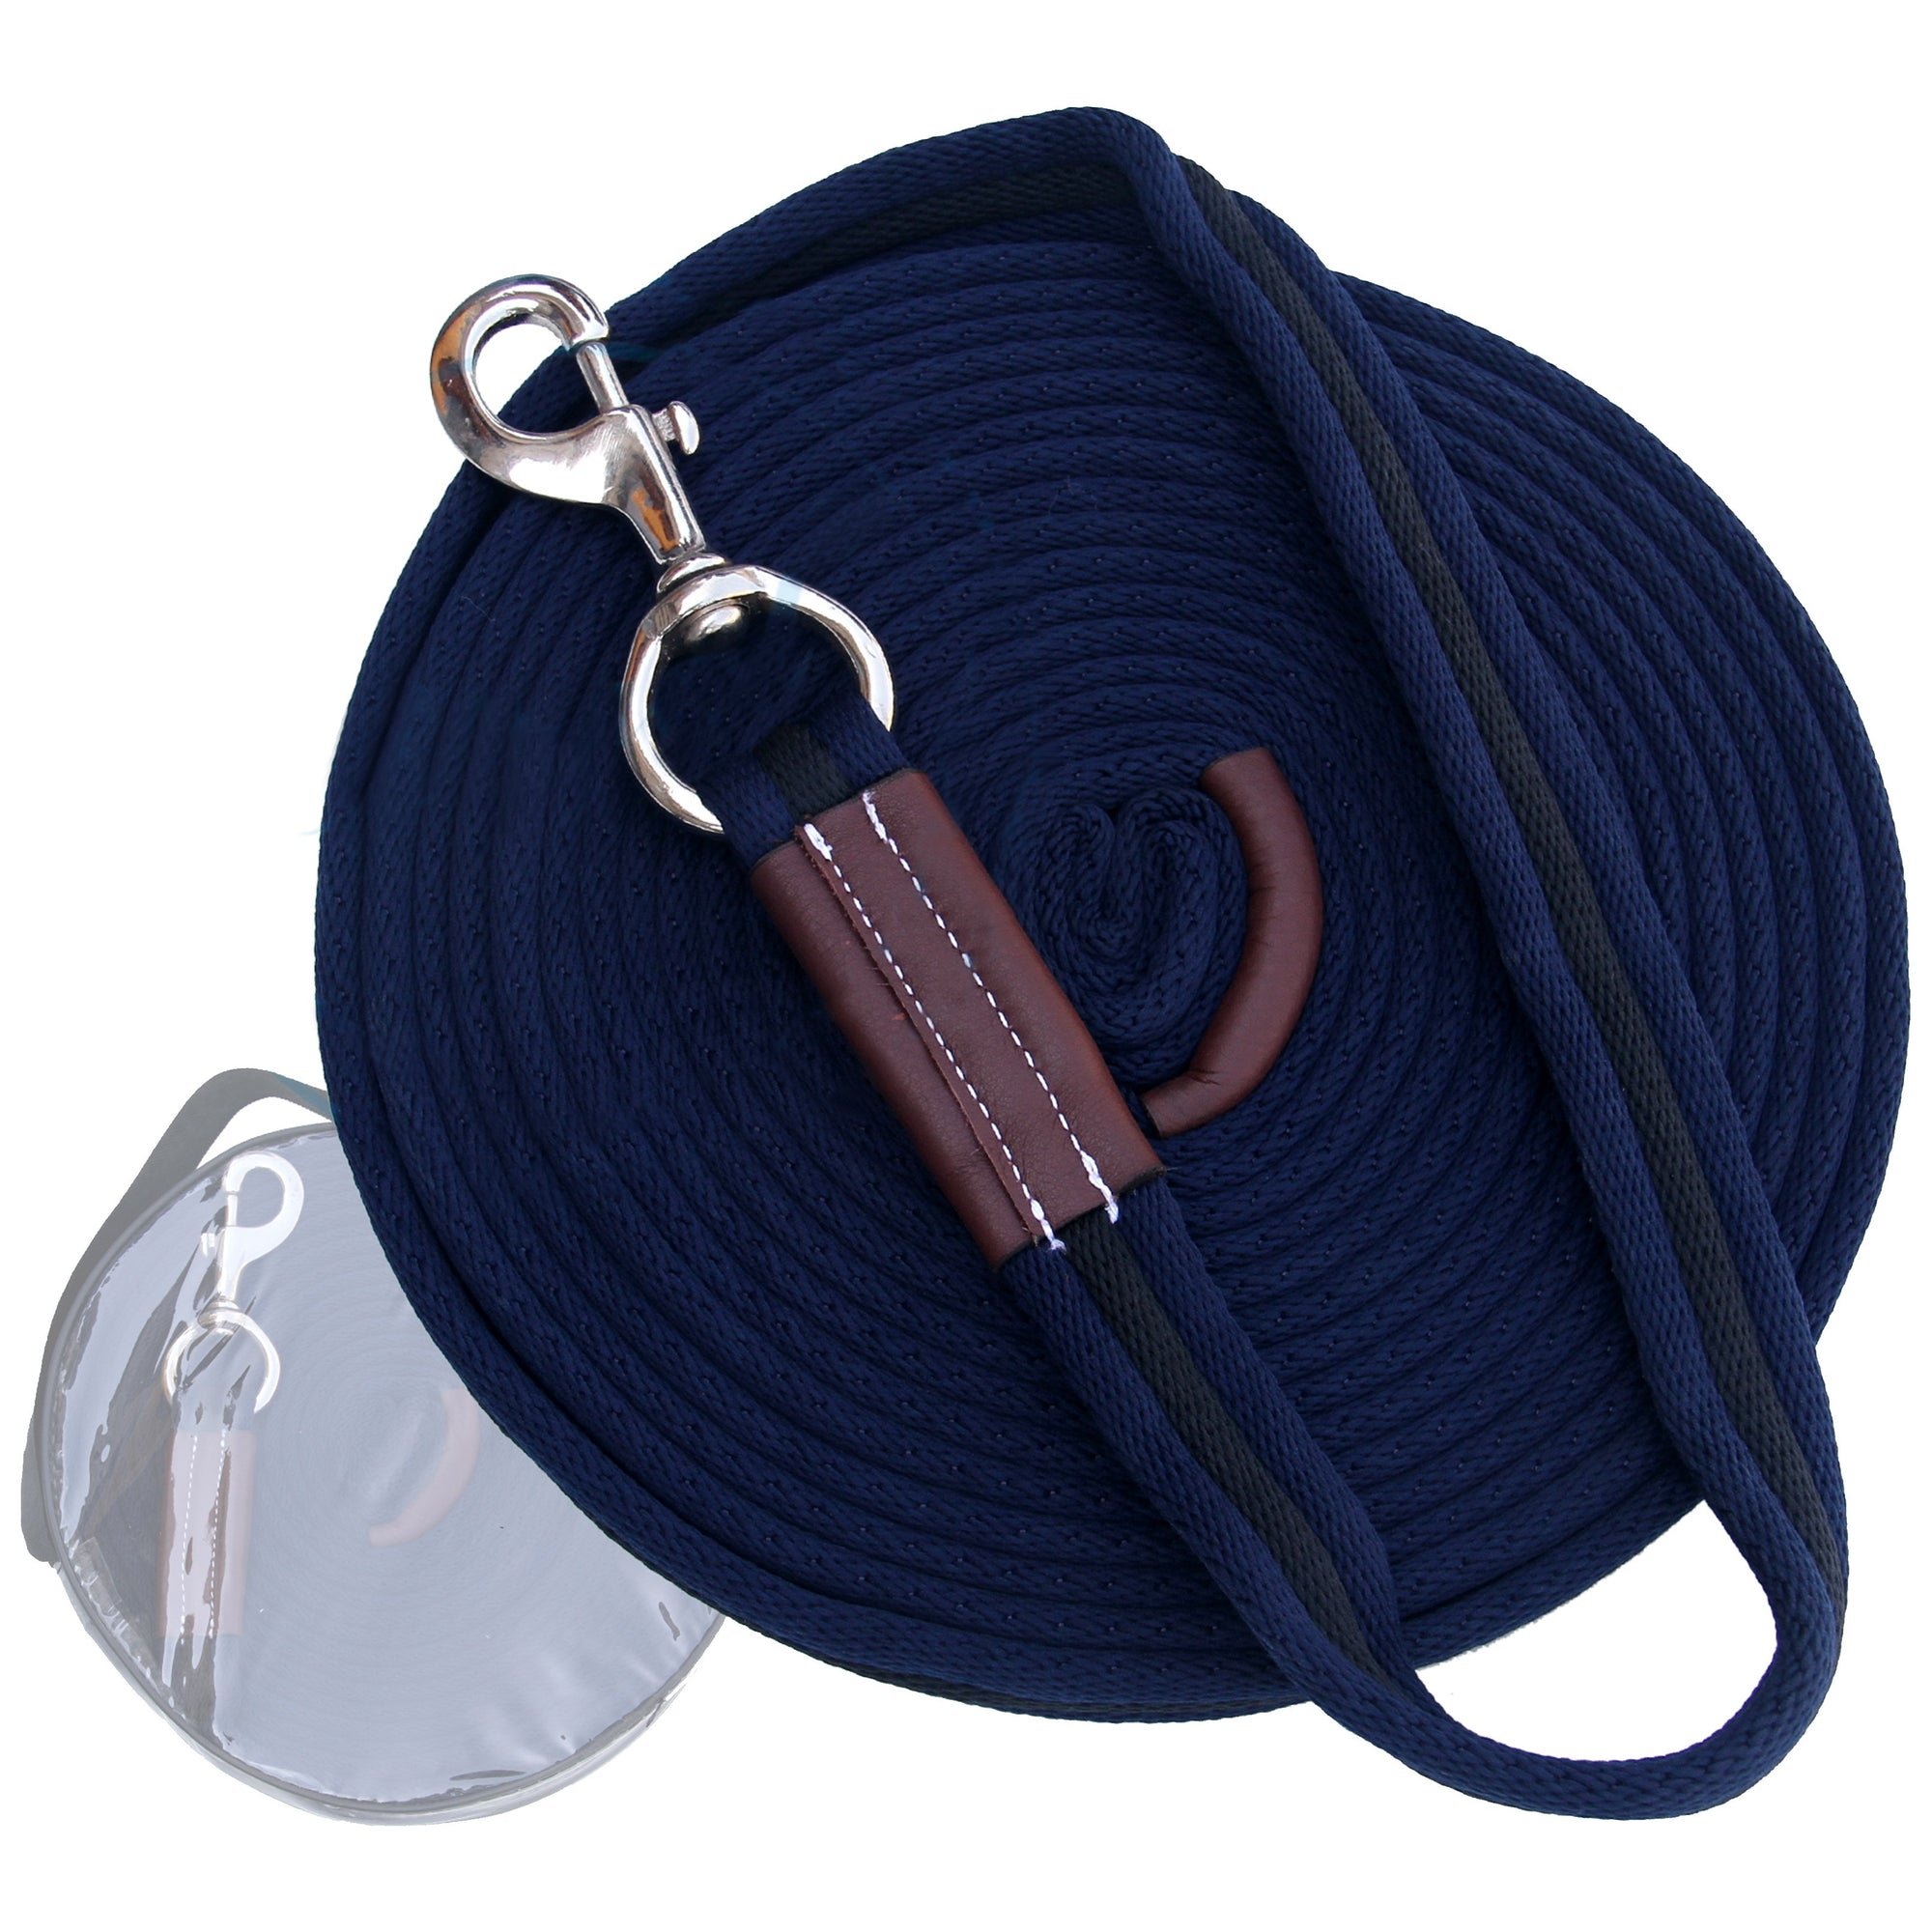 ExionPro Contrast Dark Blue with Black Color Web Cushion Leads.